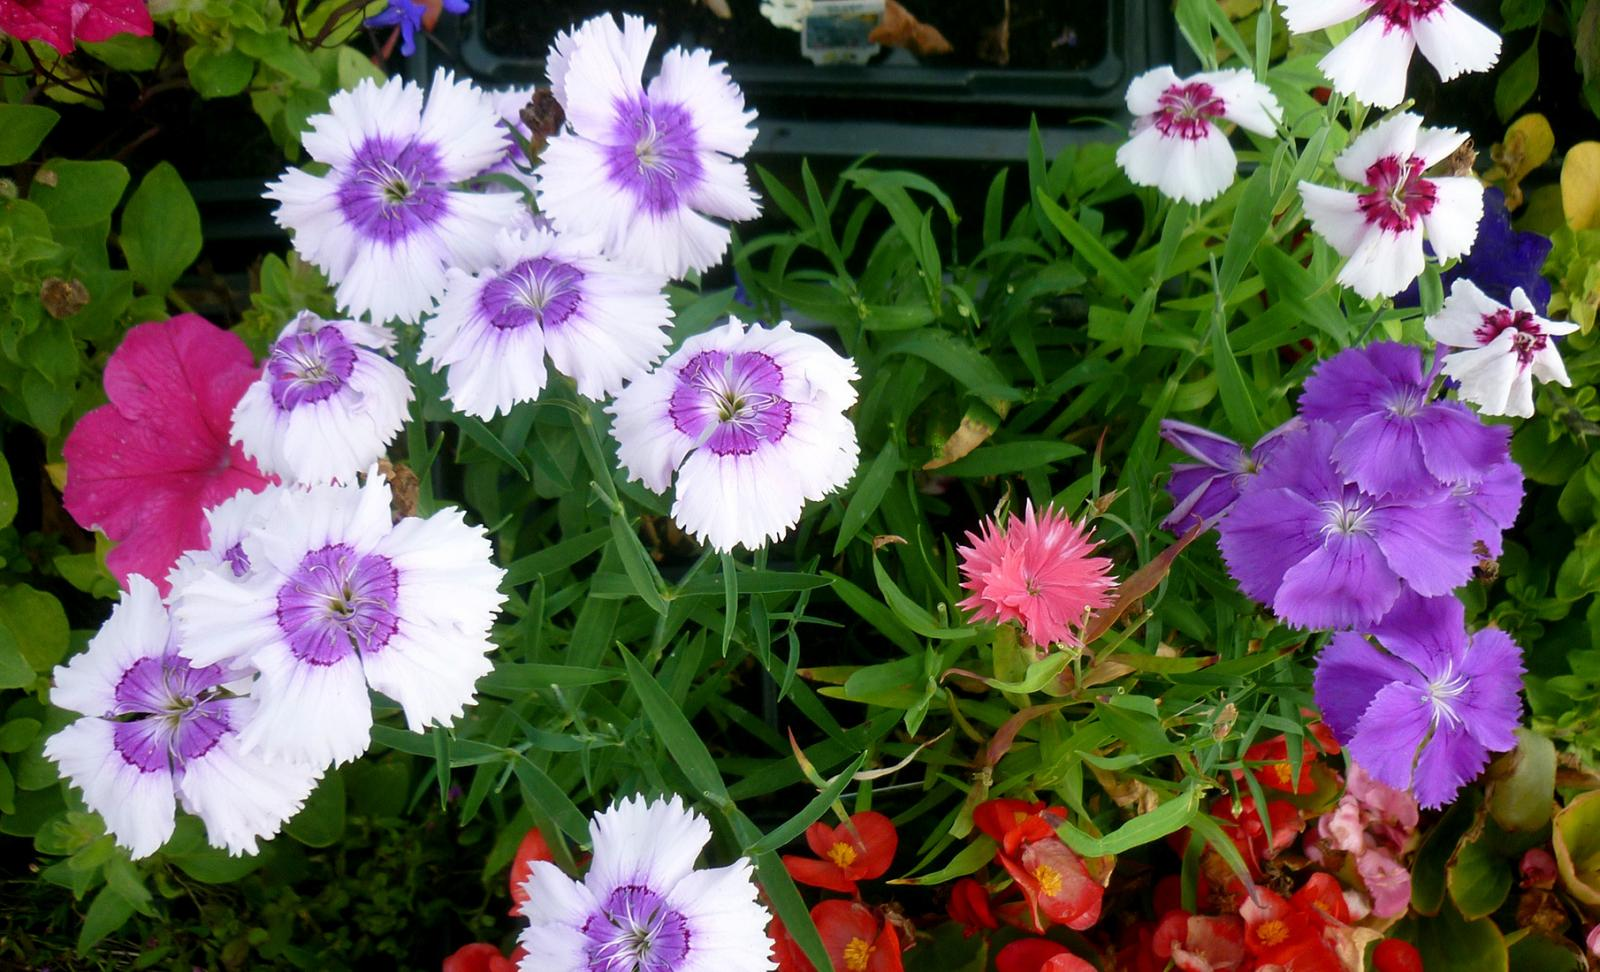 Bedding plants Caldicotts Nursery